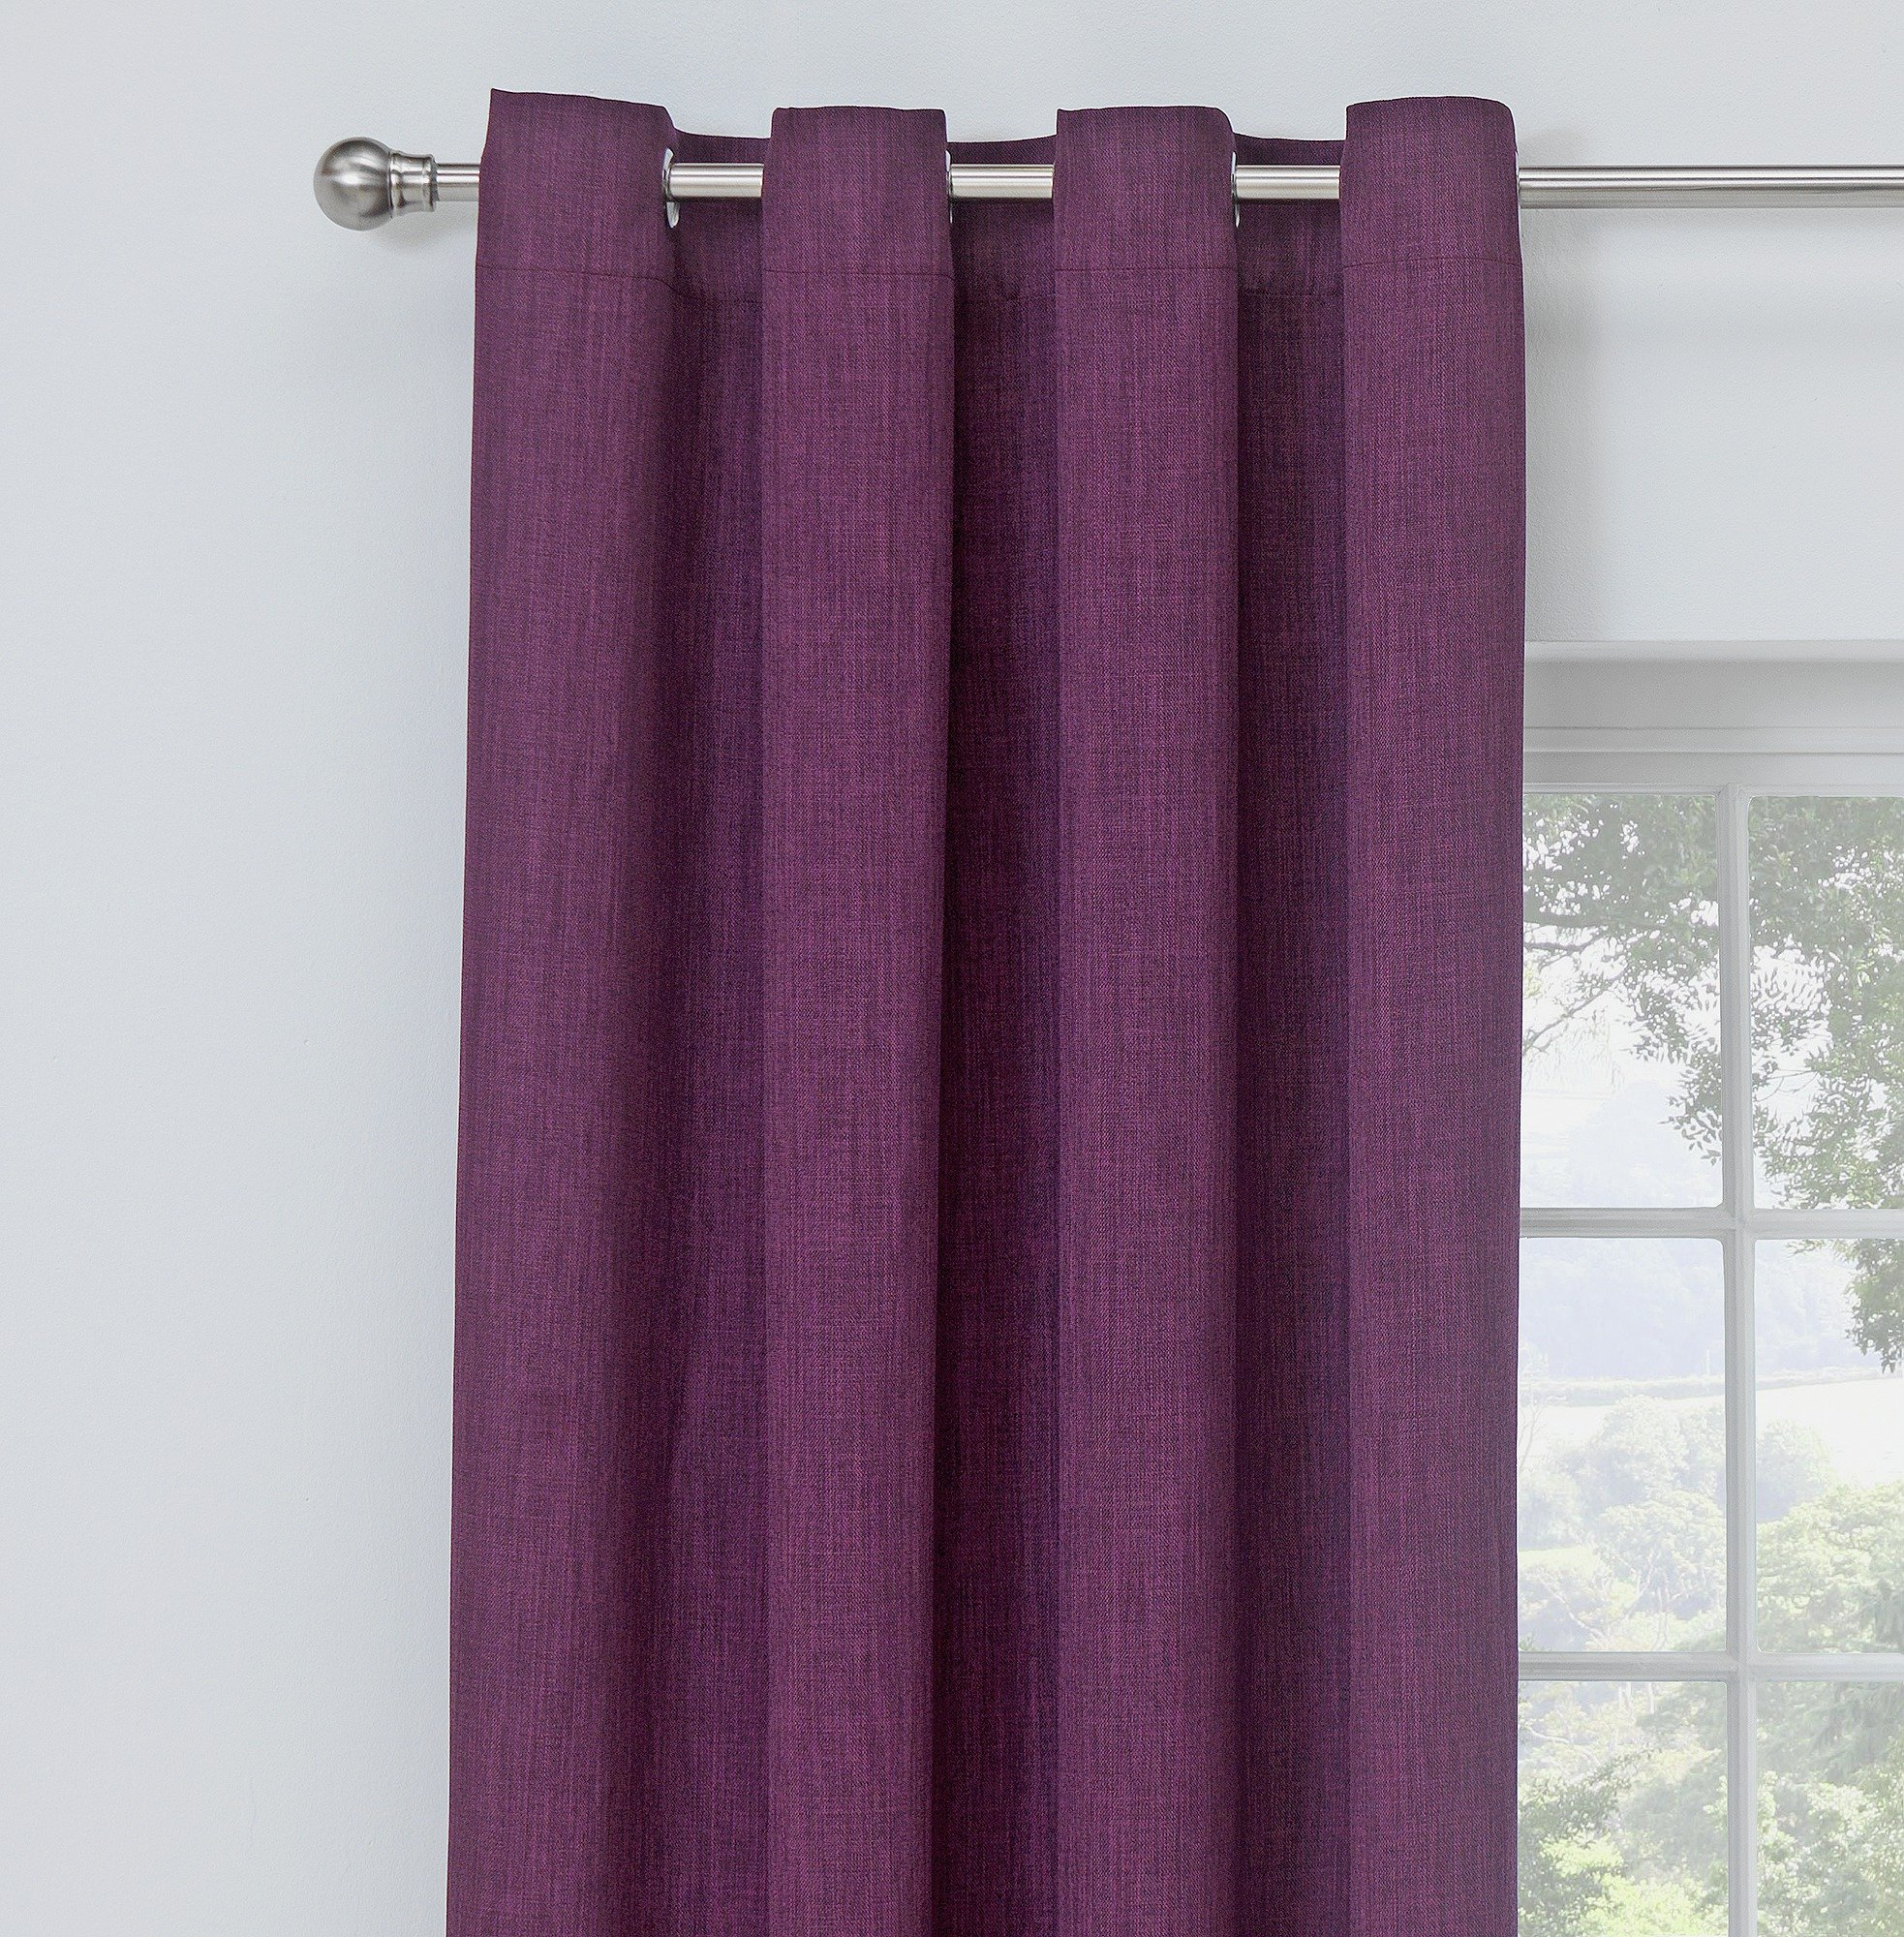 Collection Linen Look Blackout Curtains - 168x183cm - Plum